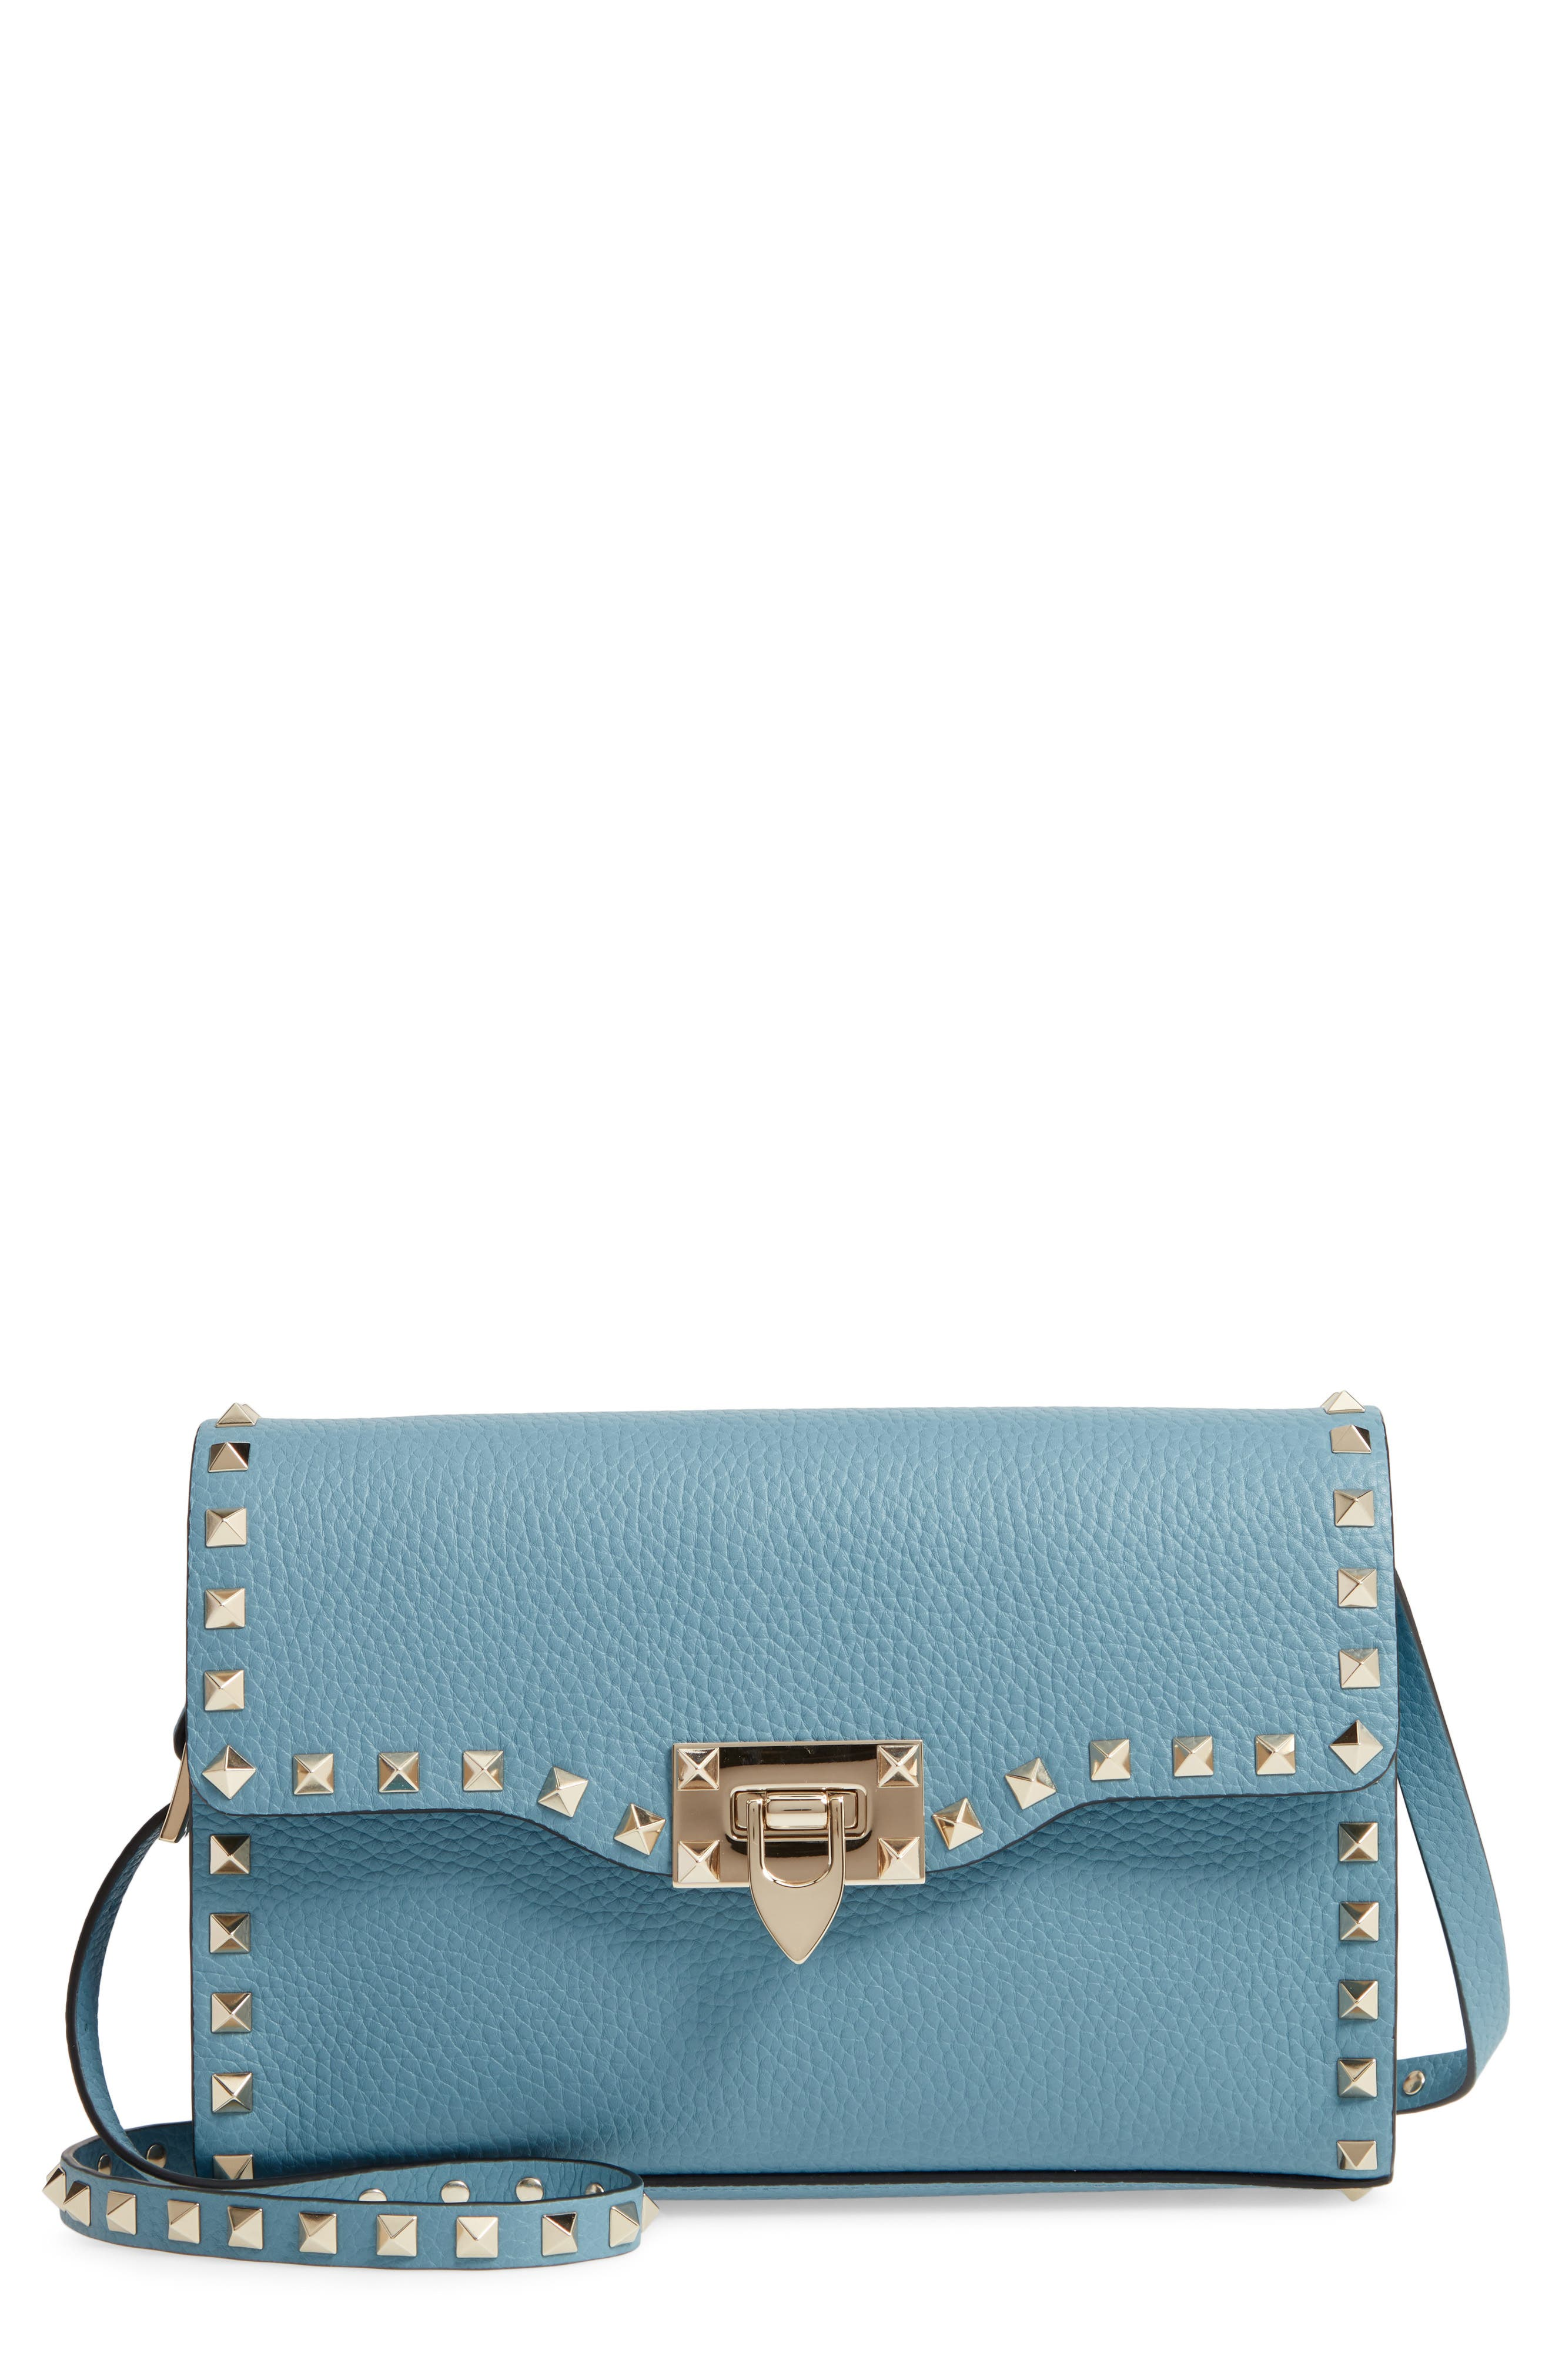 VALENTINO GARAVANI Medium Rockstud Leather Crossbody Bag, Main, color, 485